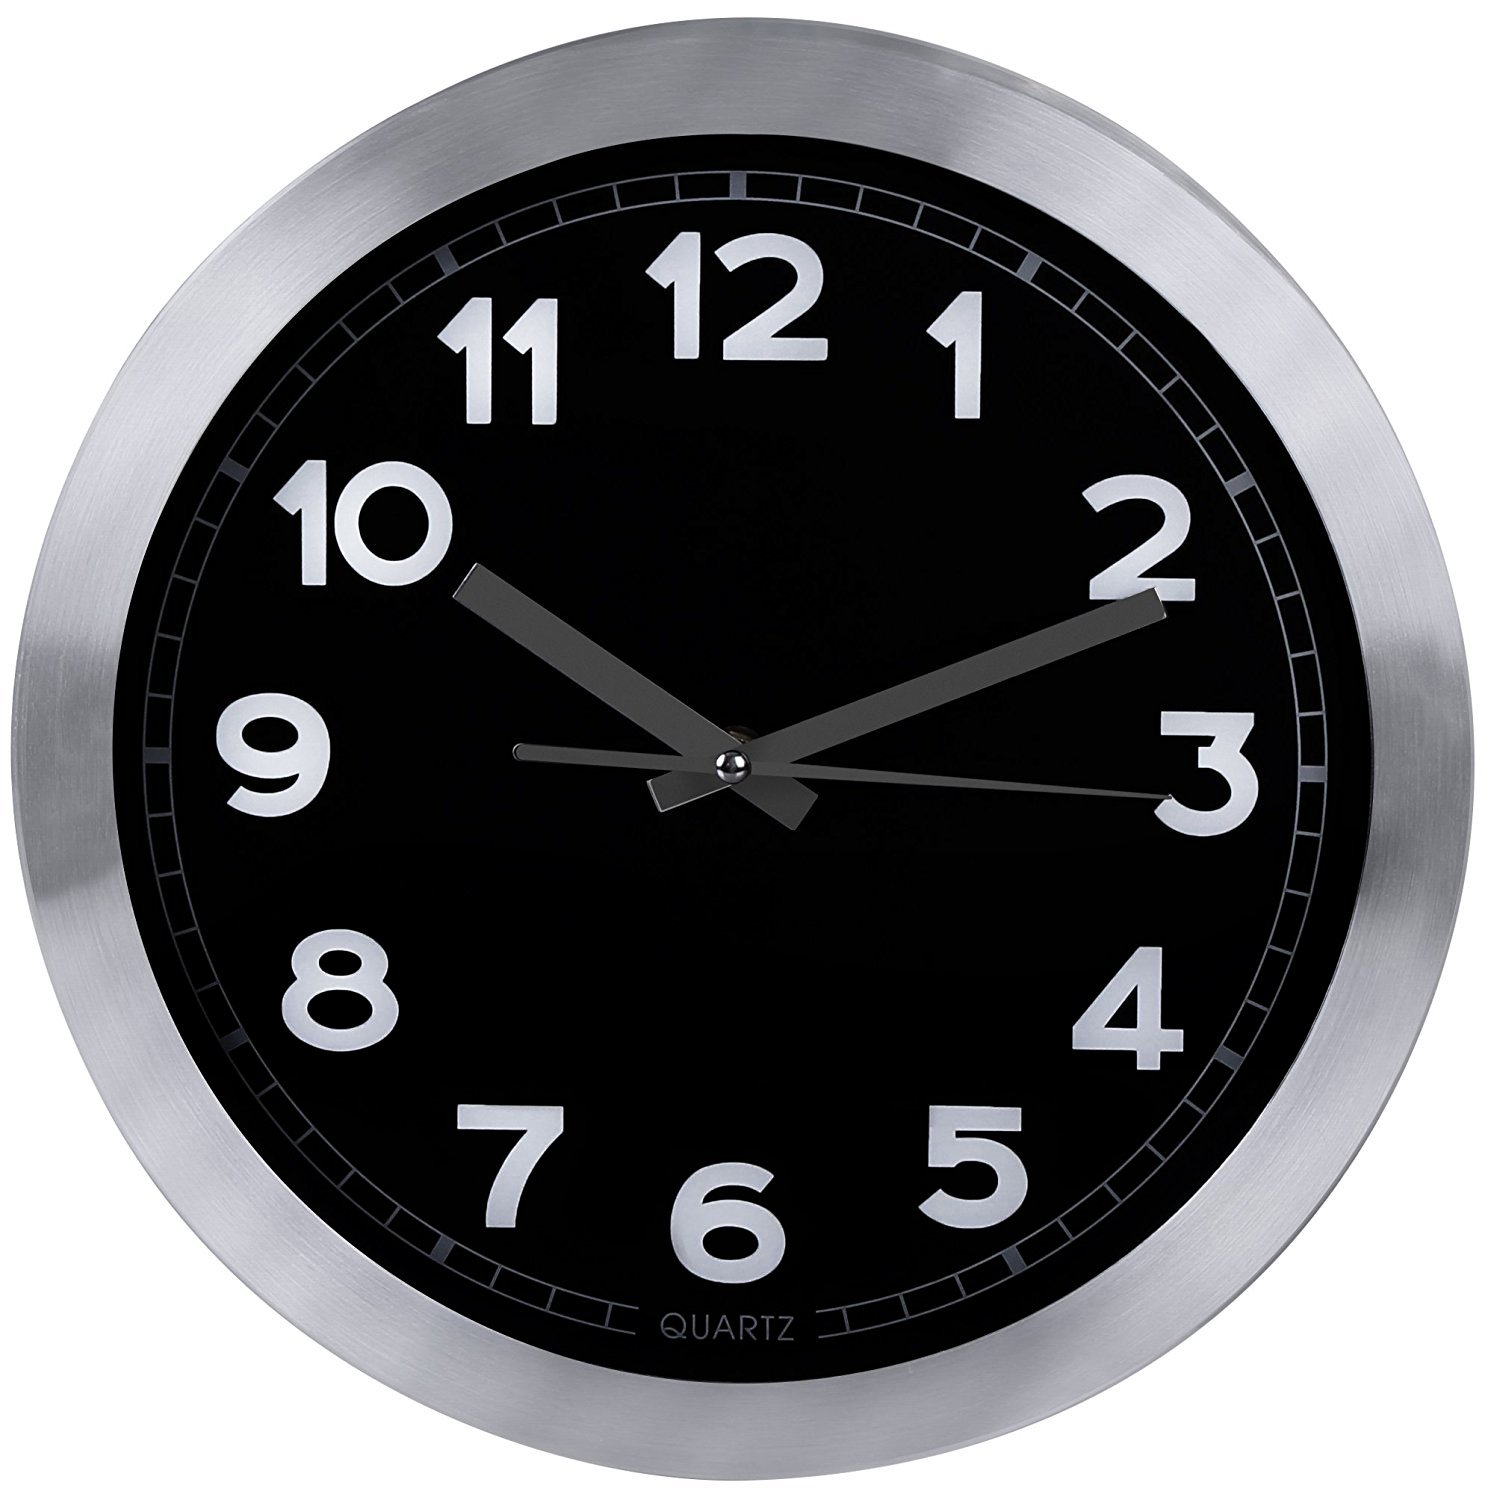 Utopia Home Decorative 12-Inch Black Wall Clock (Aluminum) - Non-Ticking, Silent Sweep Function - Black Dial with White Numbers & Silver Hands - Battery Operated -  - wall-clocks, living-room-decor, living-room - 71XzJBlFxYL -